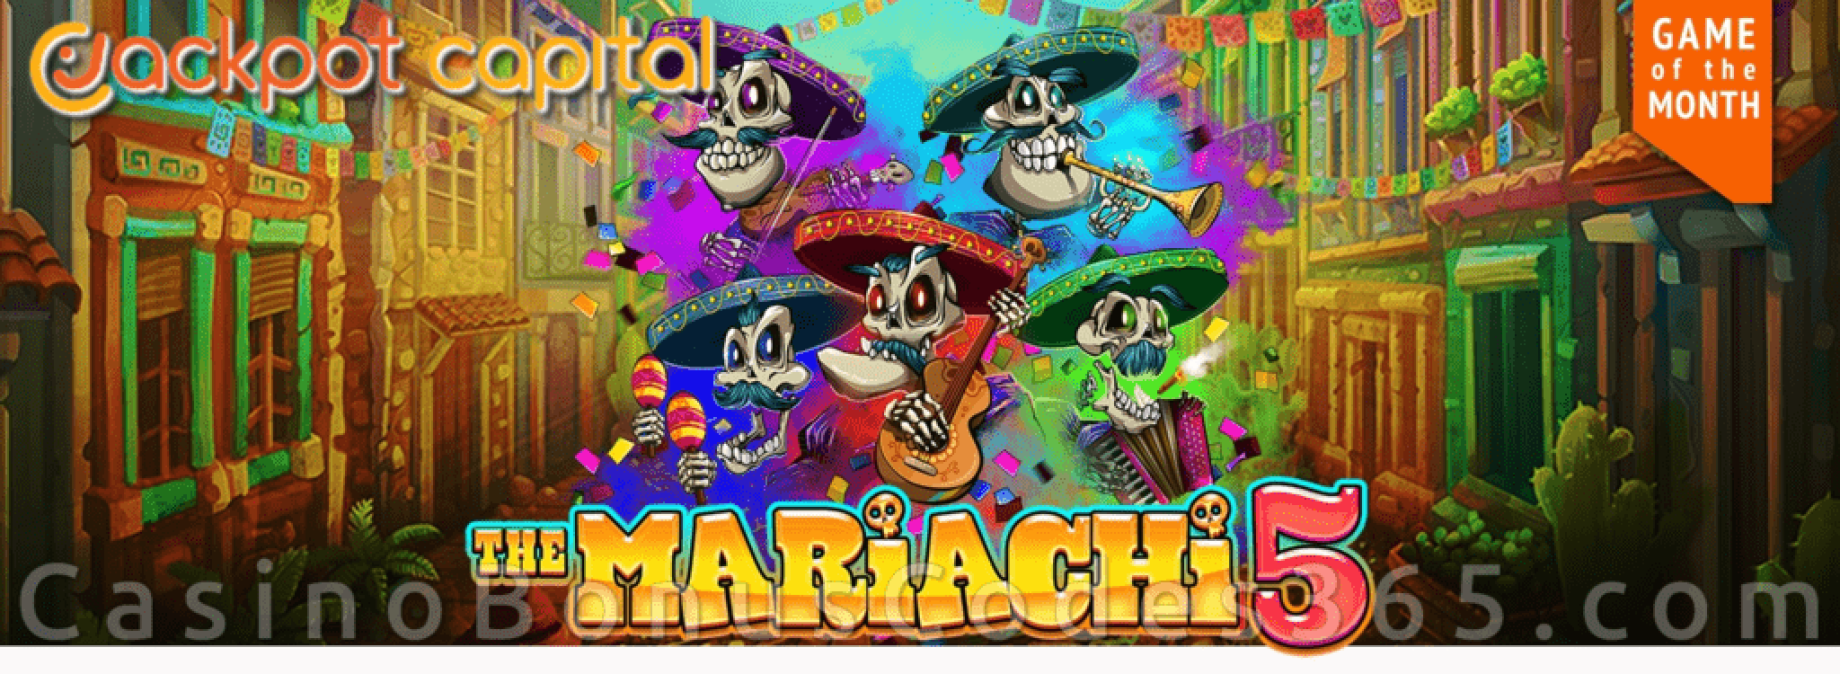 Jackpot Capital May Game of the Month RTG The Mariachi 5